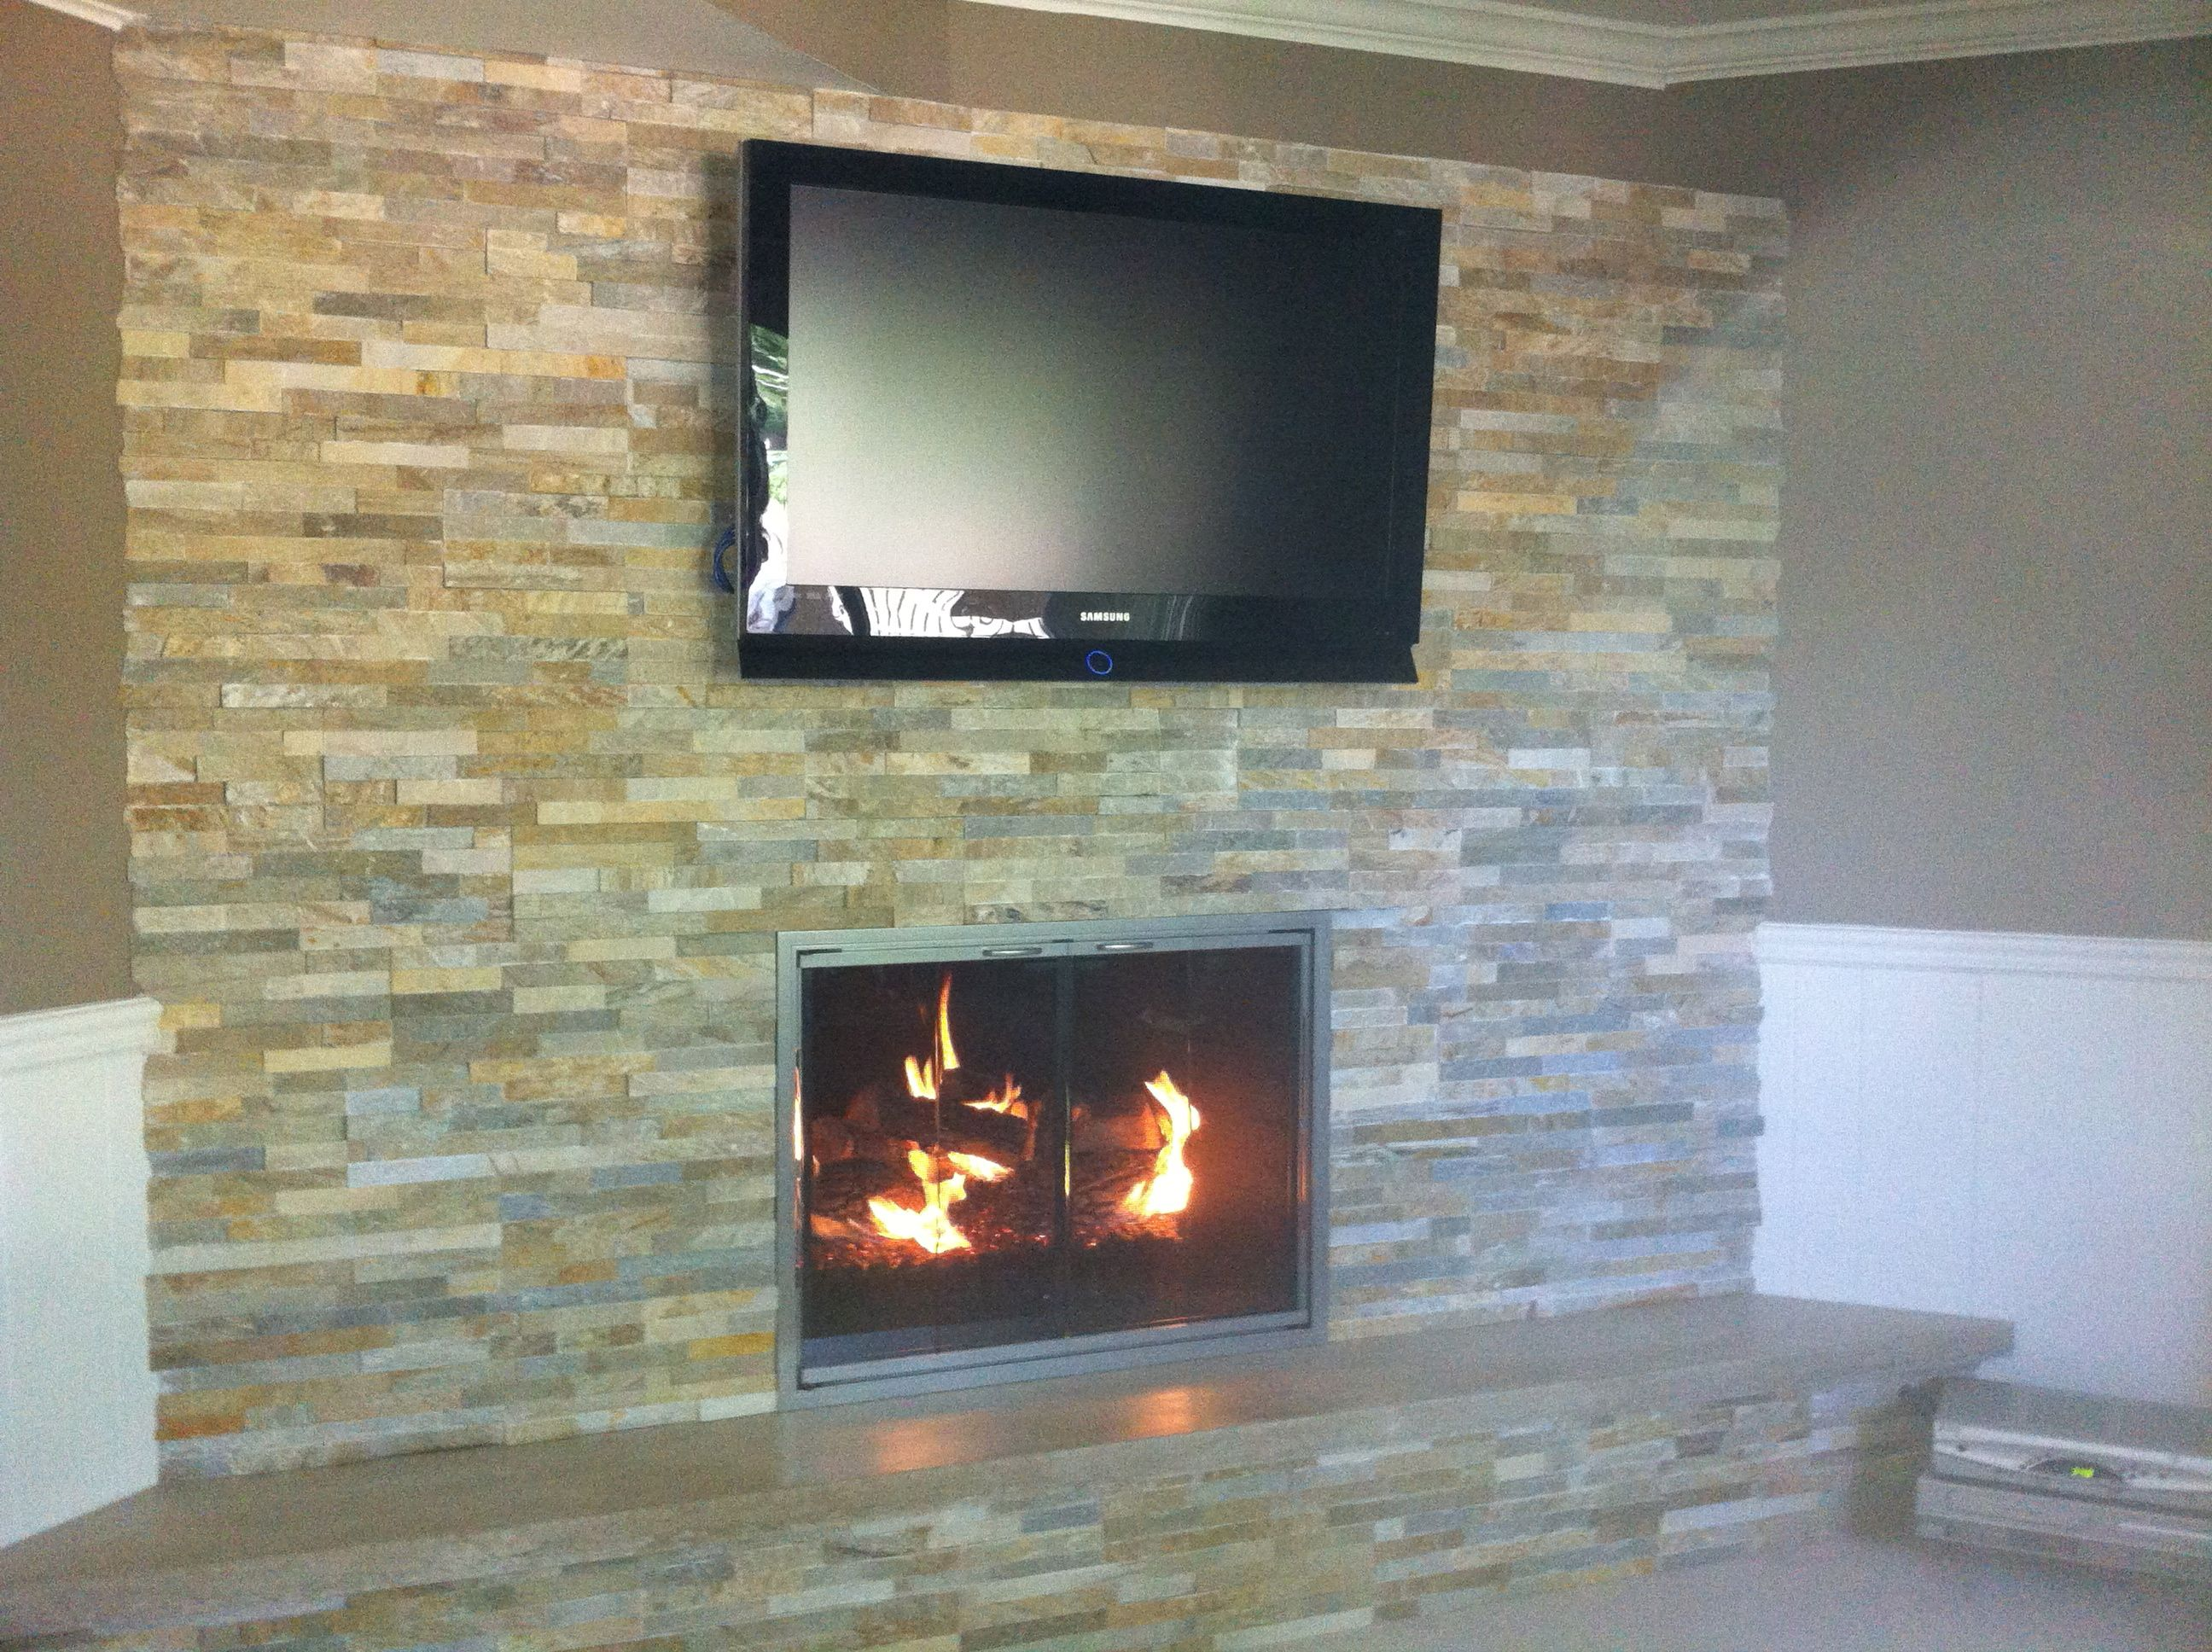 Gas Fireplace   Gas Logs by Rasmussen  Glass Door by Design Specialties  Ledgestone by Real Stone Systems  TV Above Fireplace  Sealed Limestone Hearth